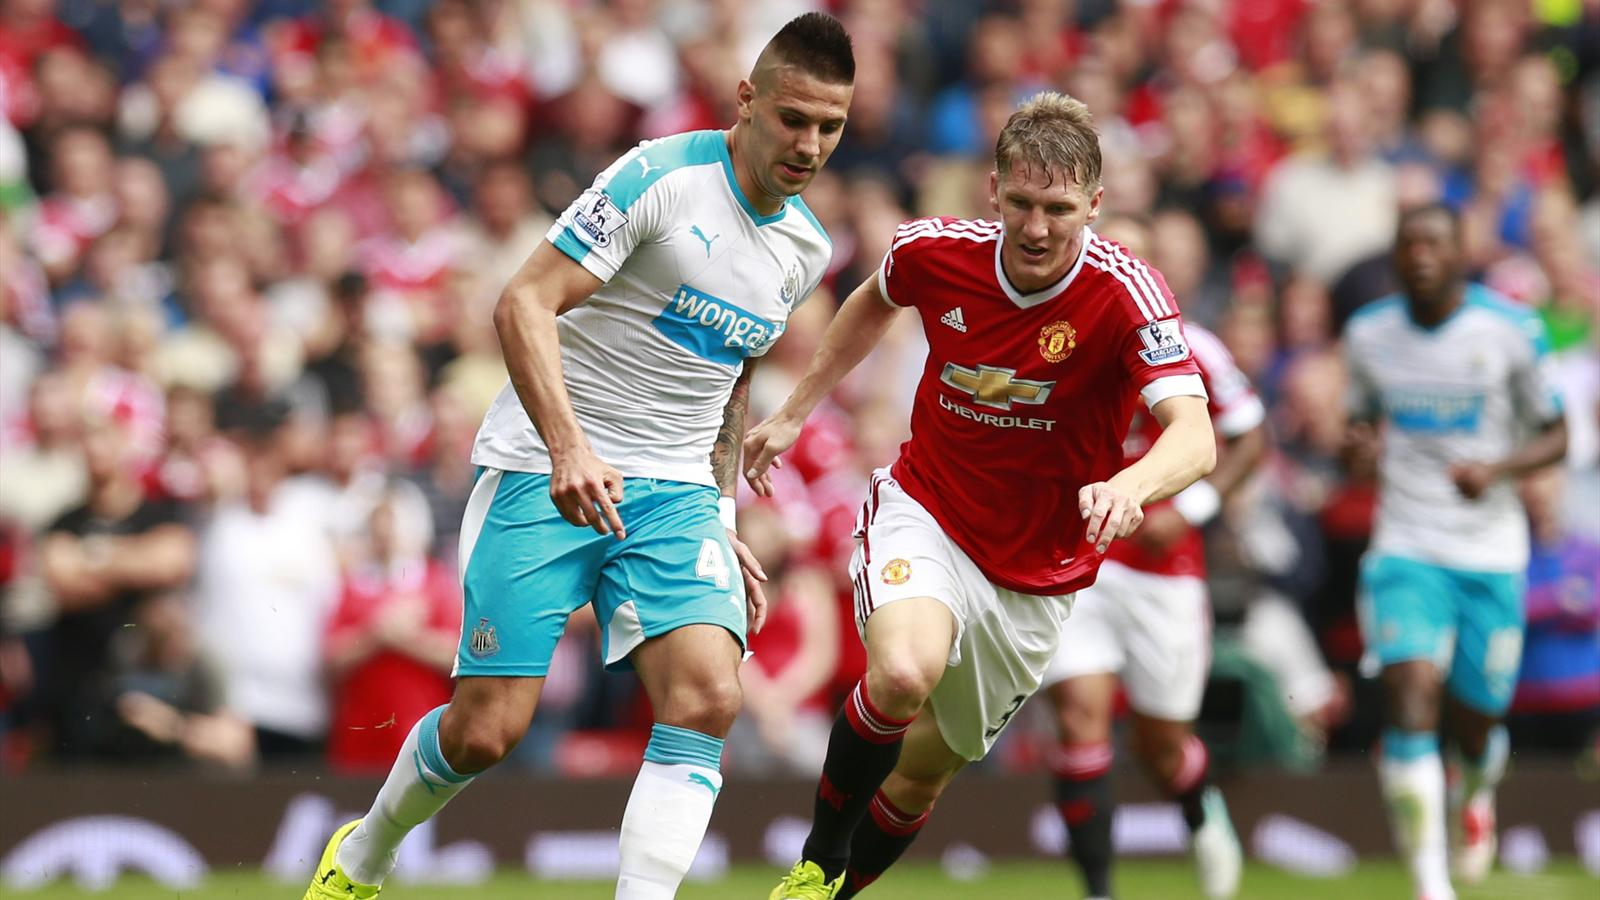 Manchester United's Bastian Schweinsteiger in action with Newcastle United's Aleksandar Mitrovic